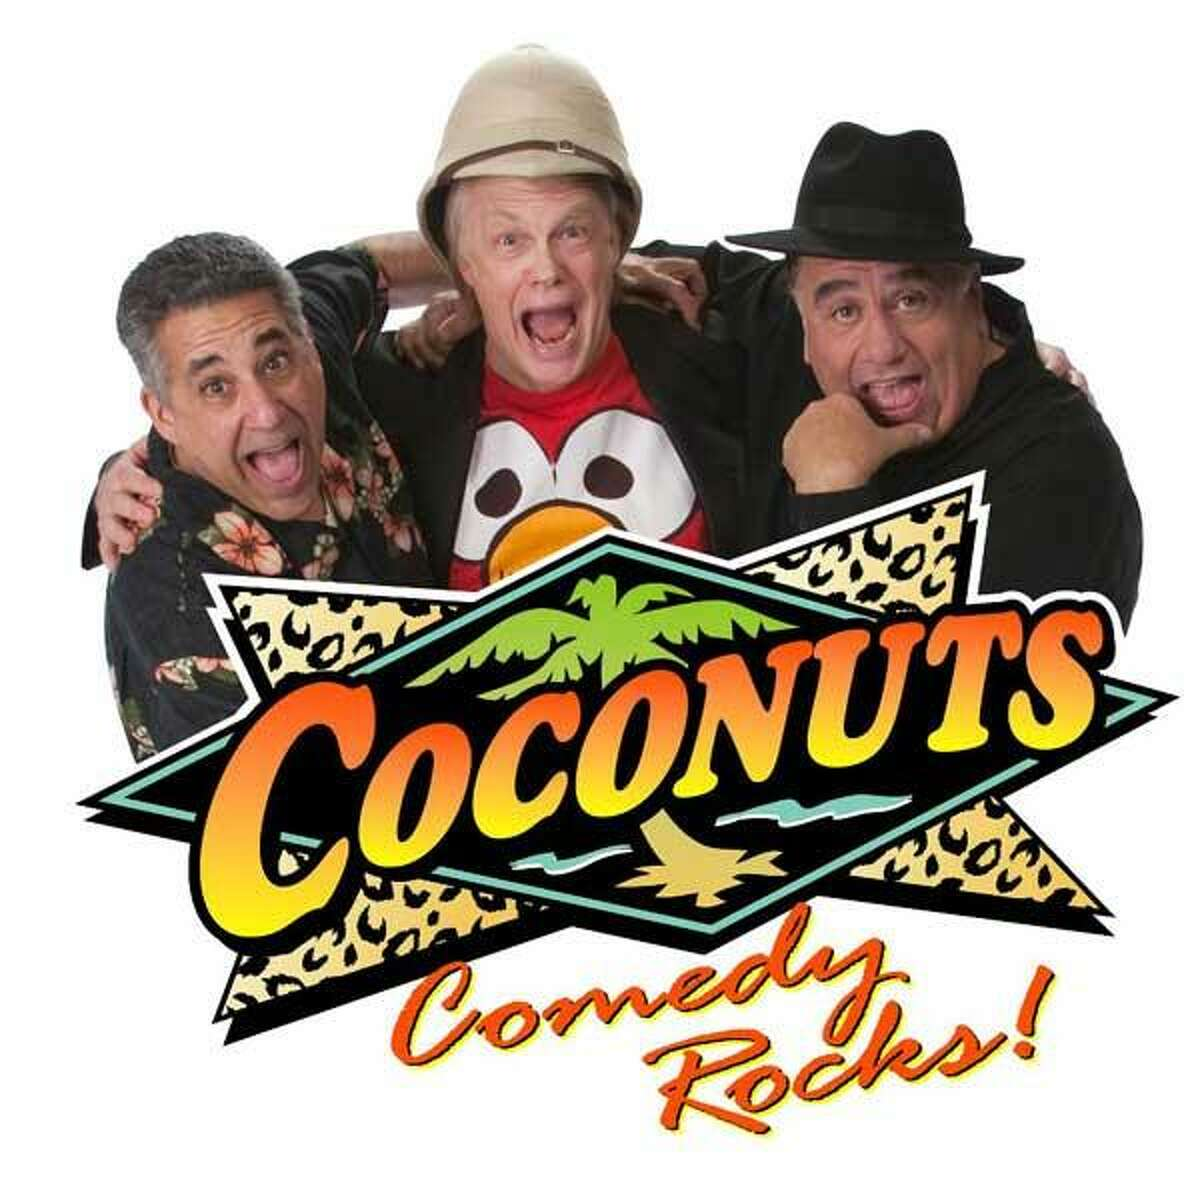 The Coconuts bring their unique brand of comedy to Middletown on Feb. 23.